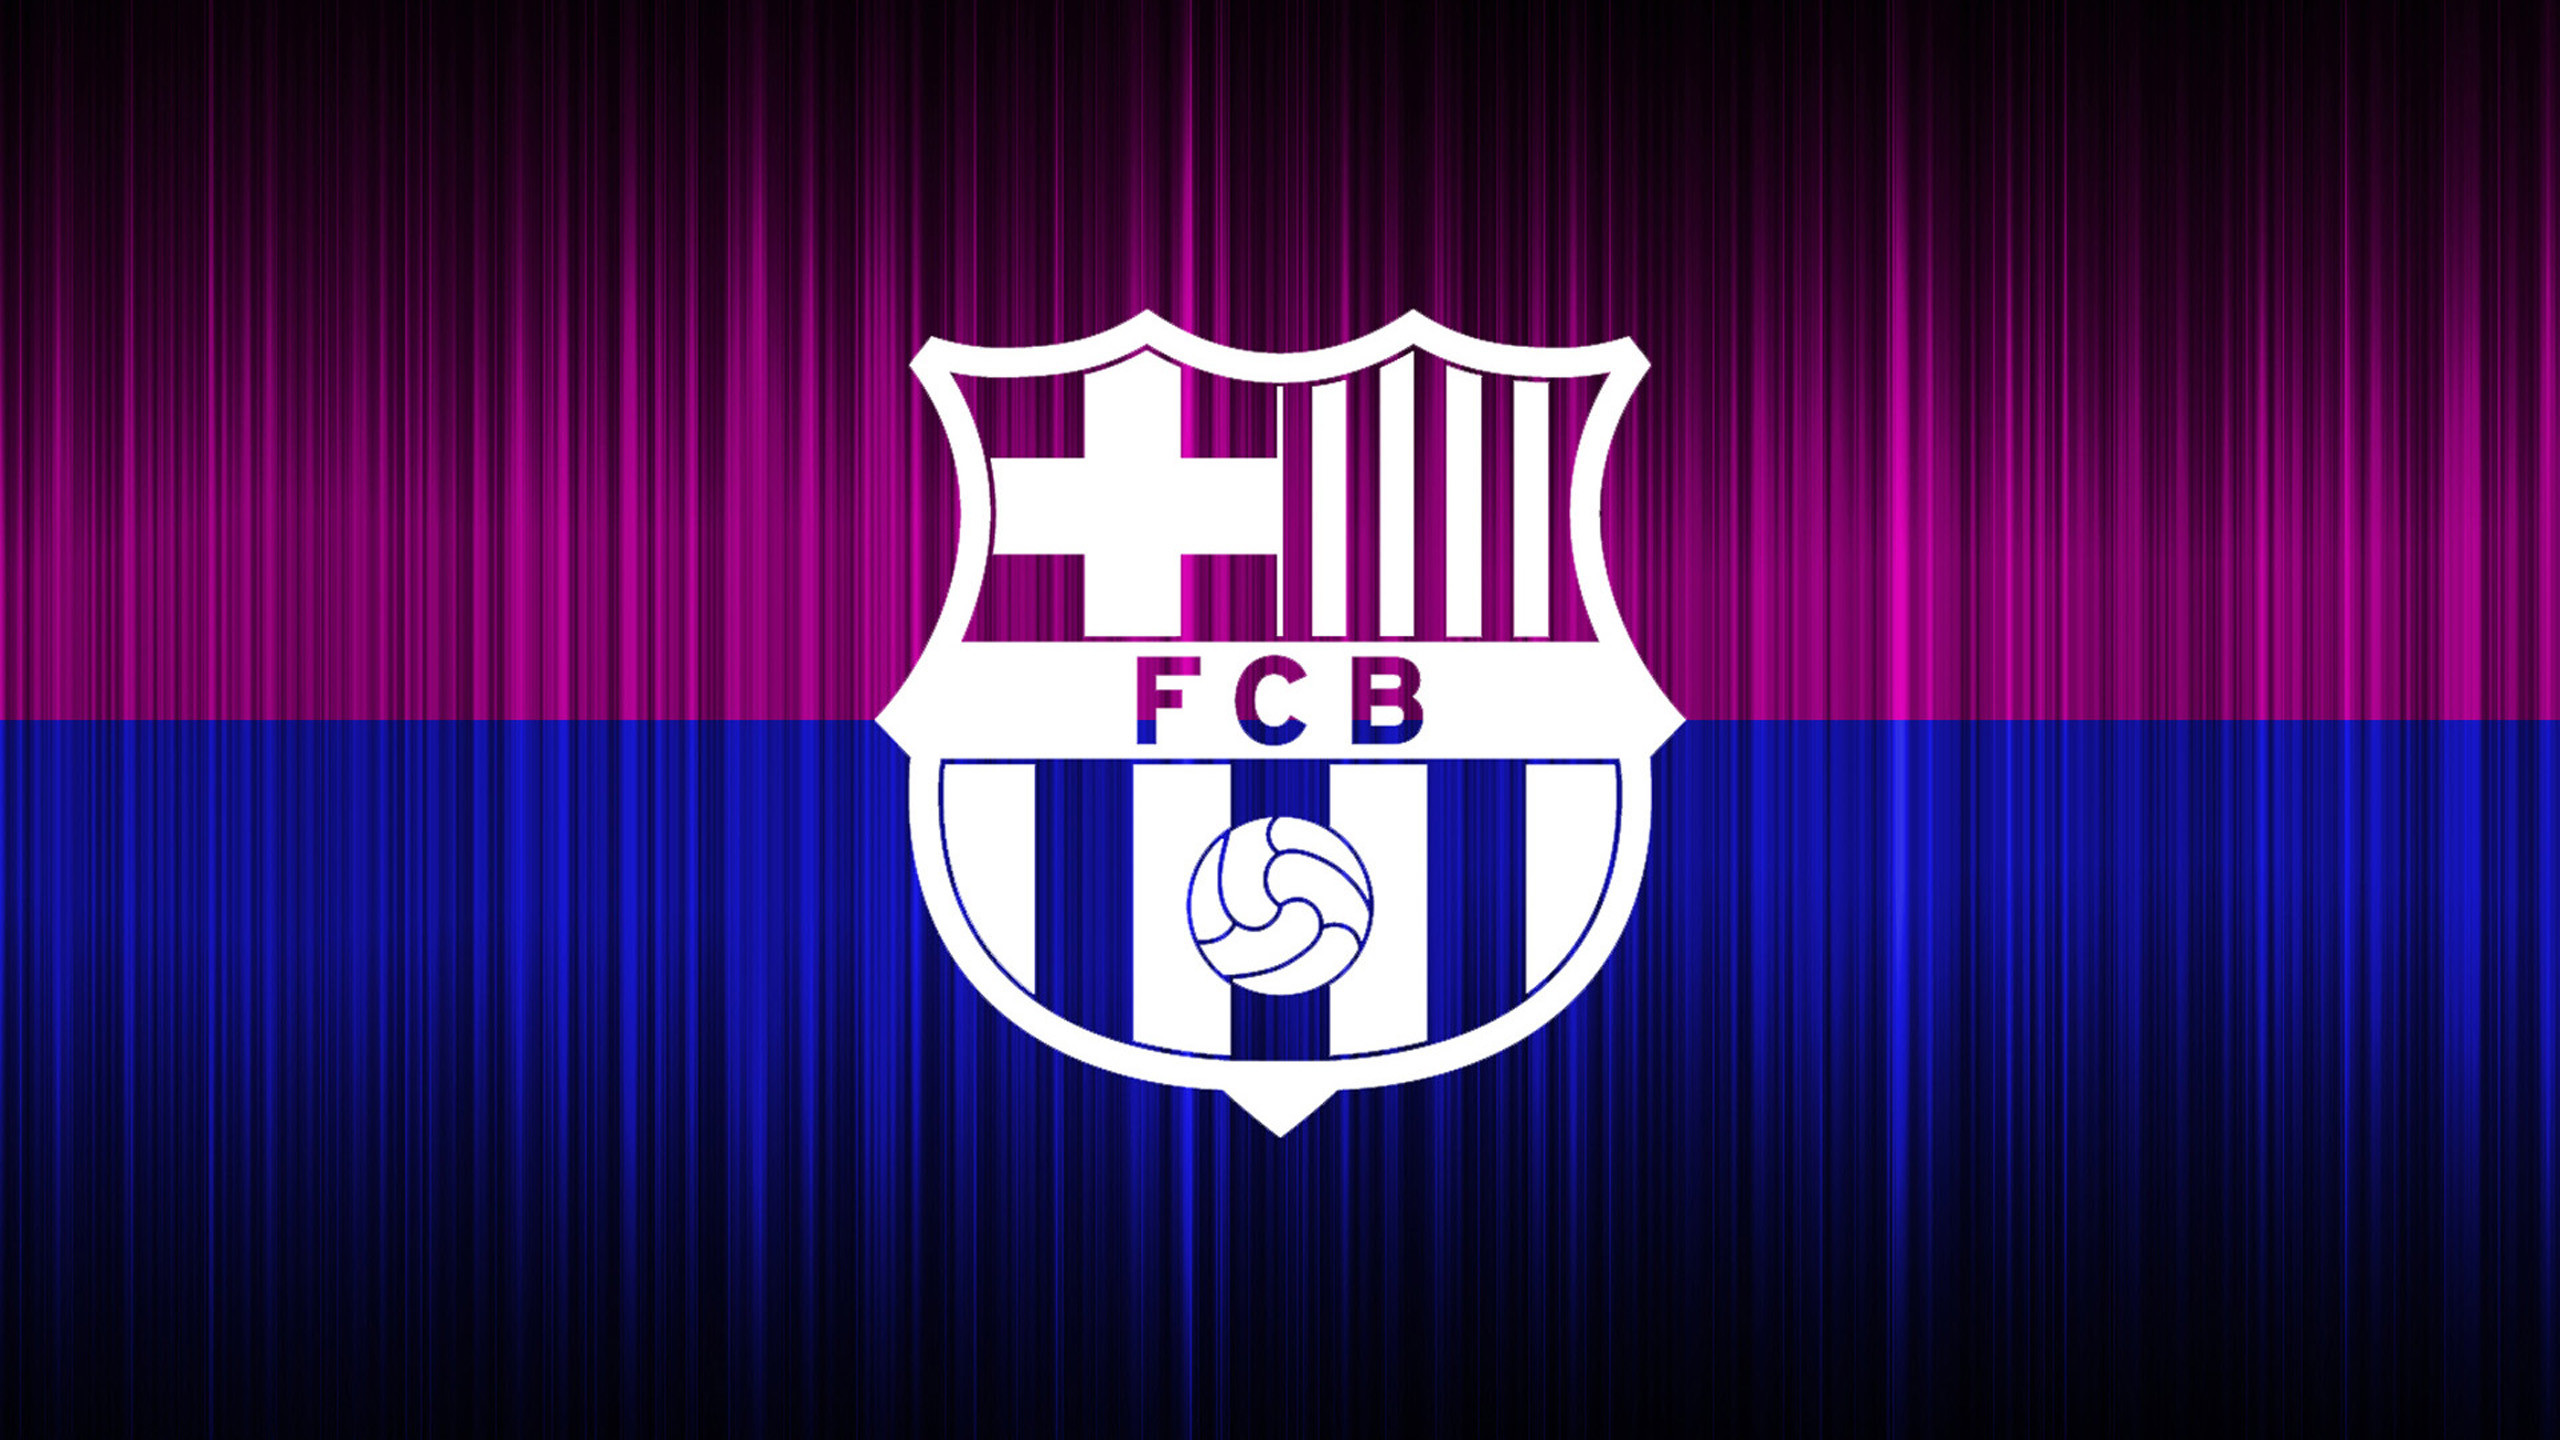 2560x1440 FCB Logo Backgrounds.